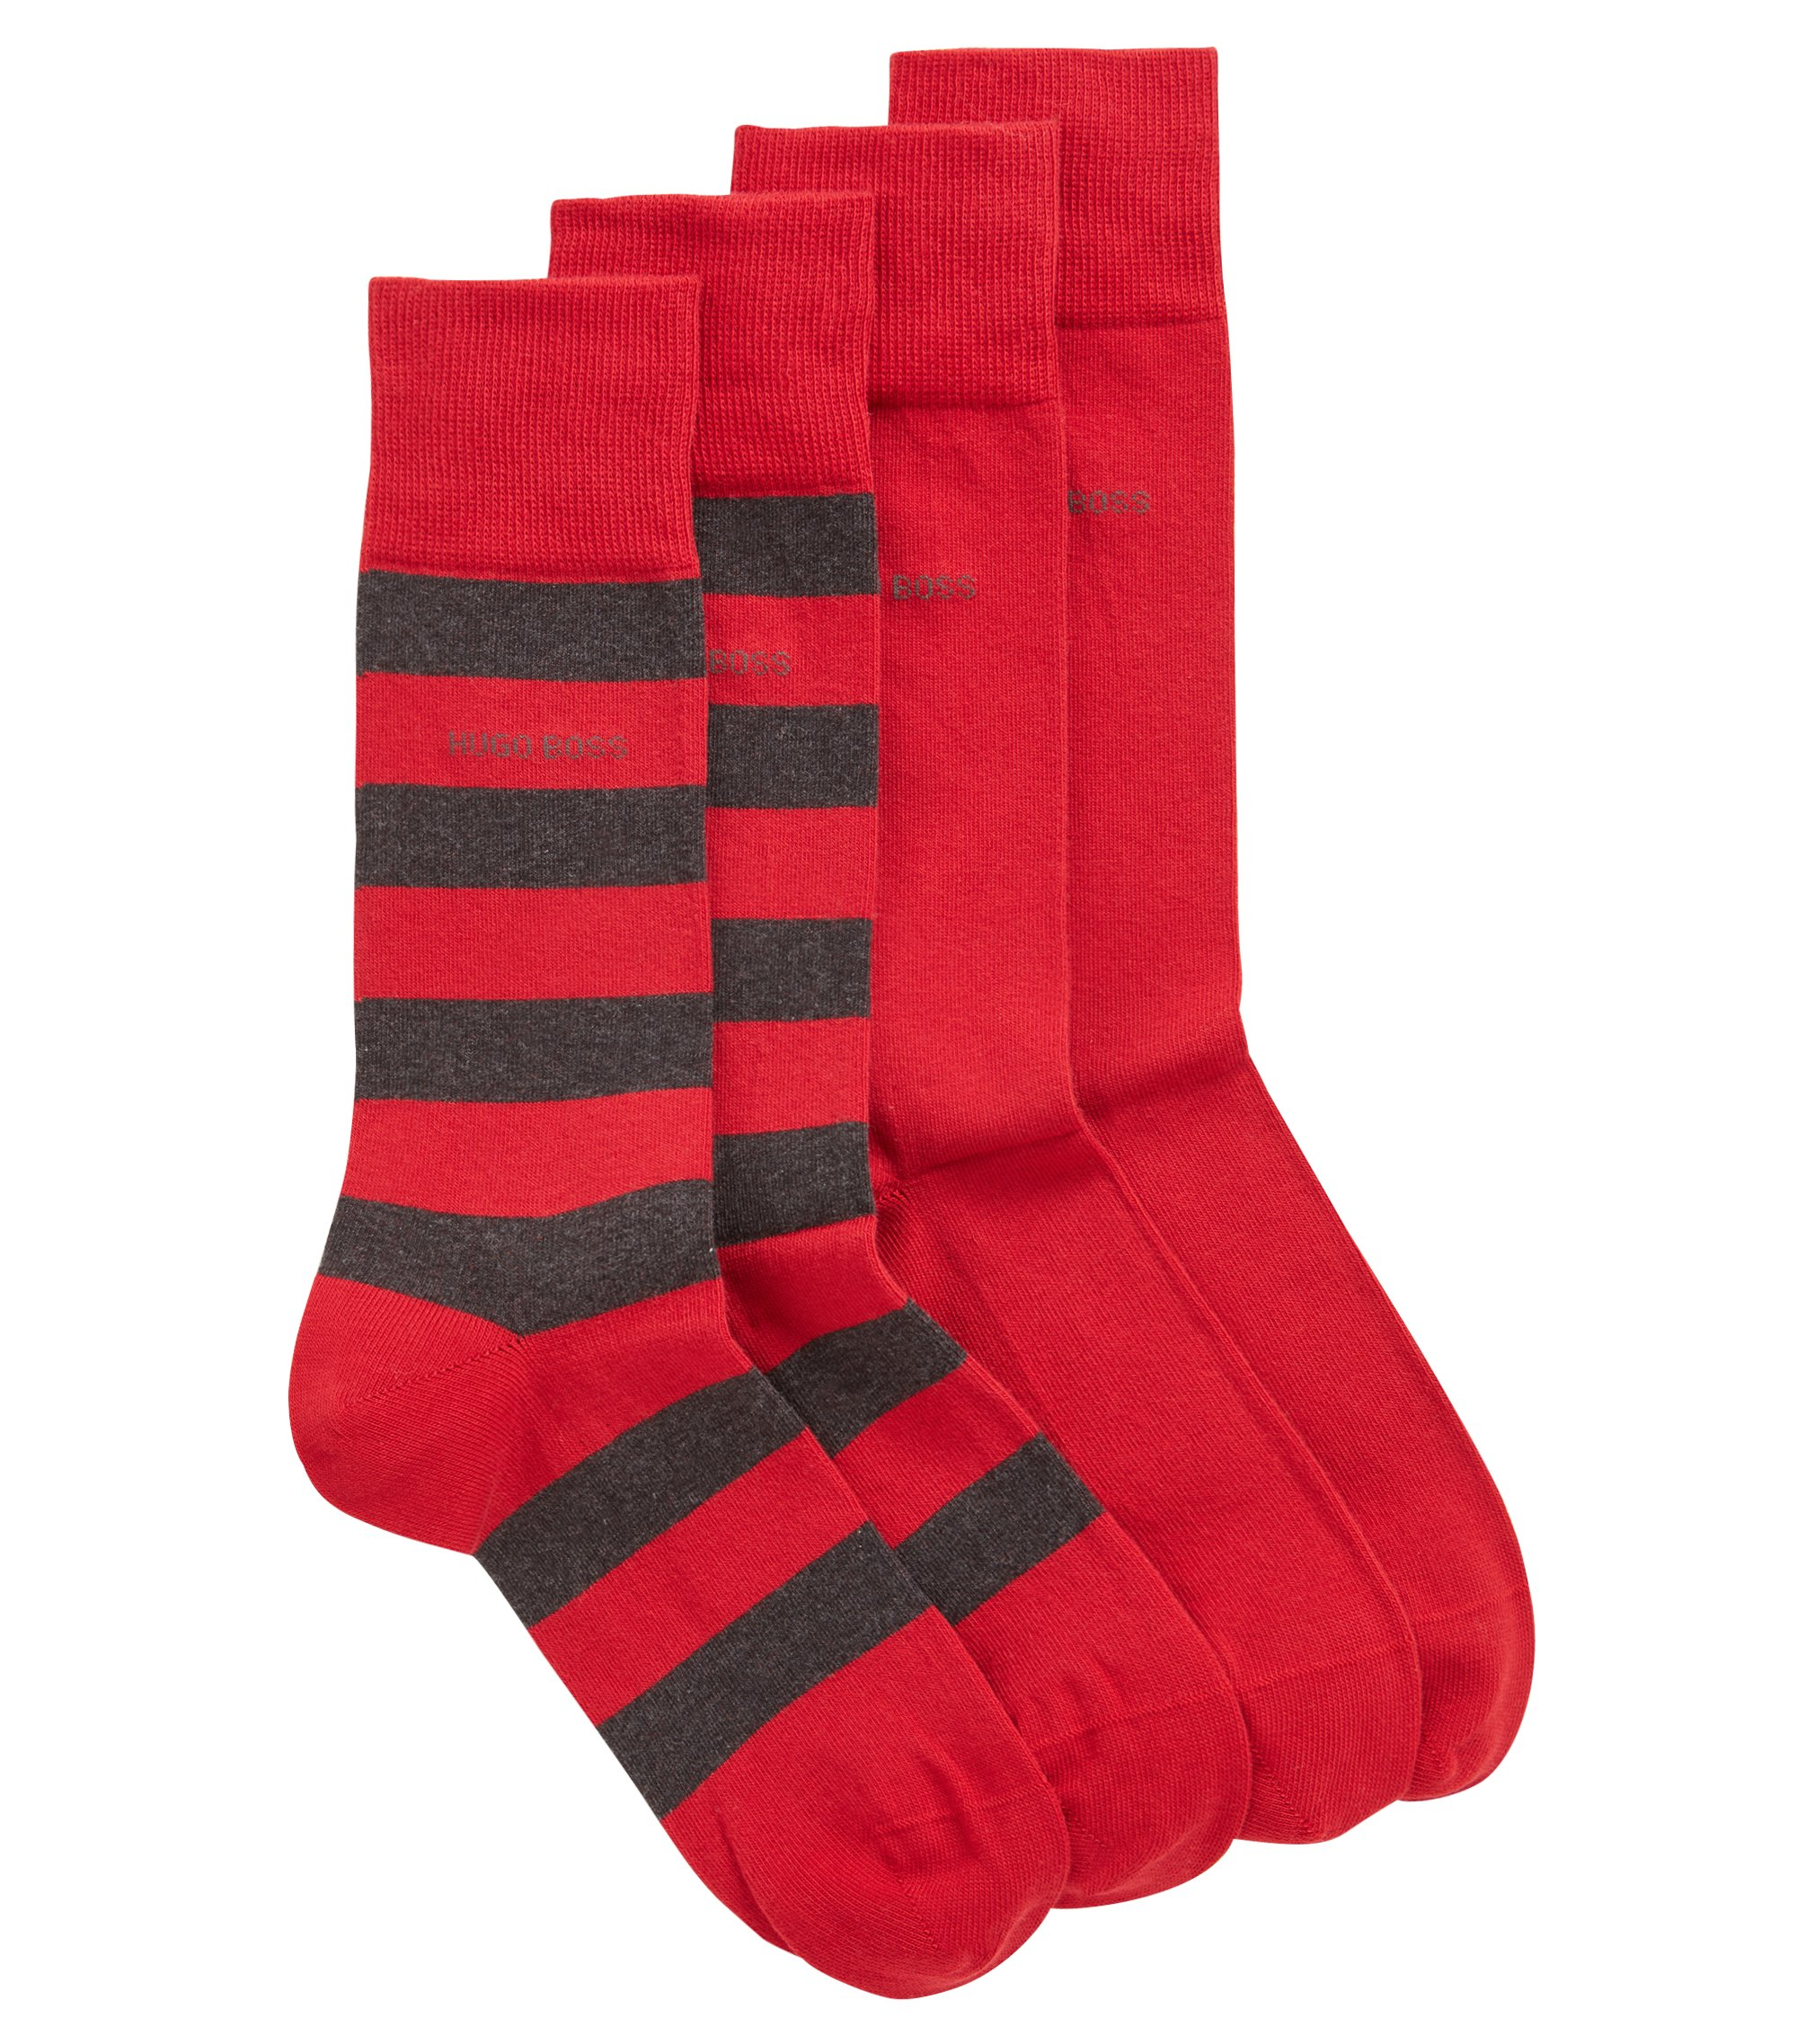 Two-pack of socks in a combed cotton blend, Red